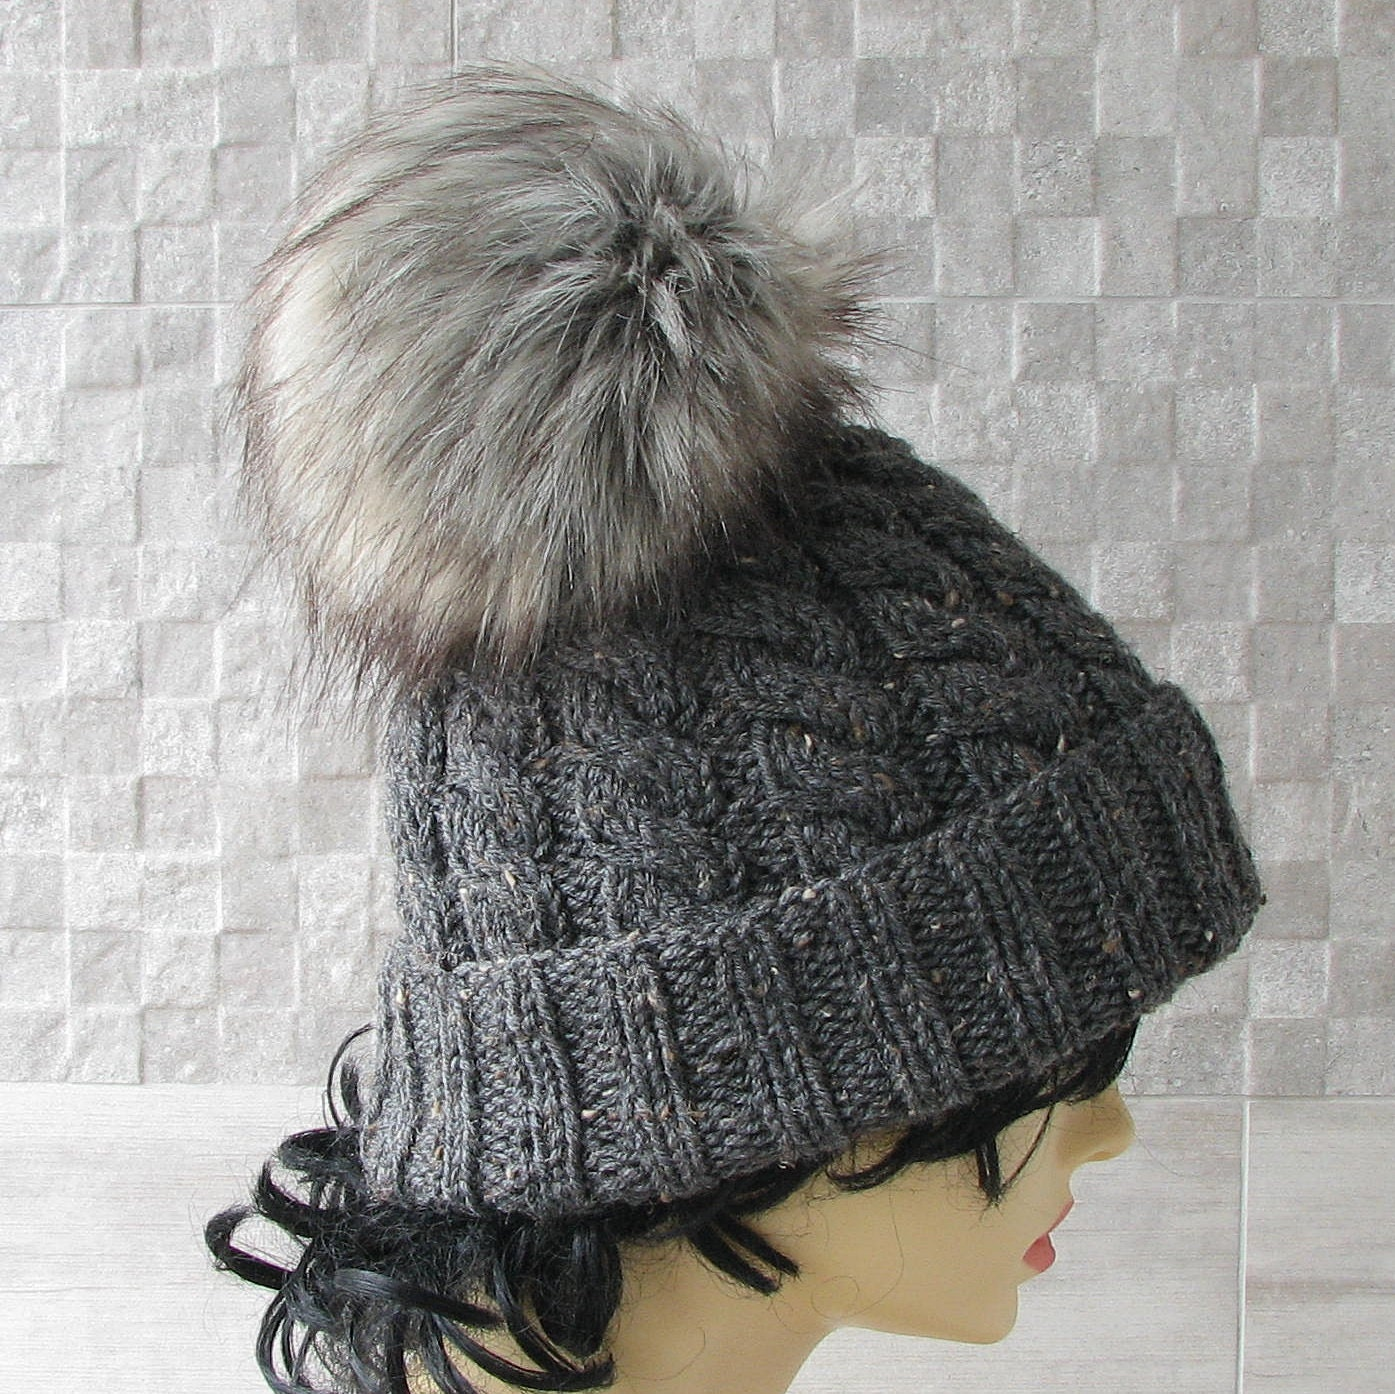 cool hats winter hat for kniited beanie hat knit hat